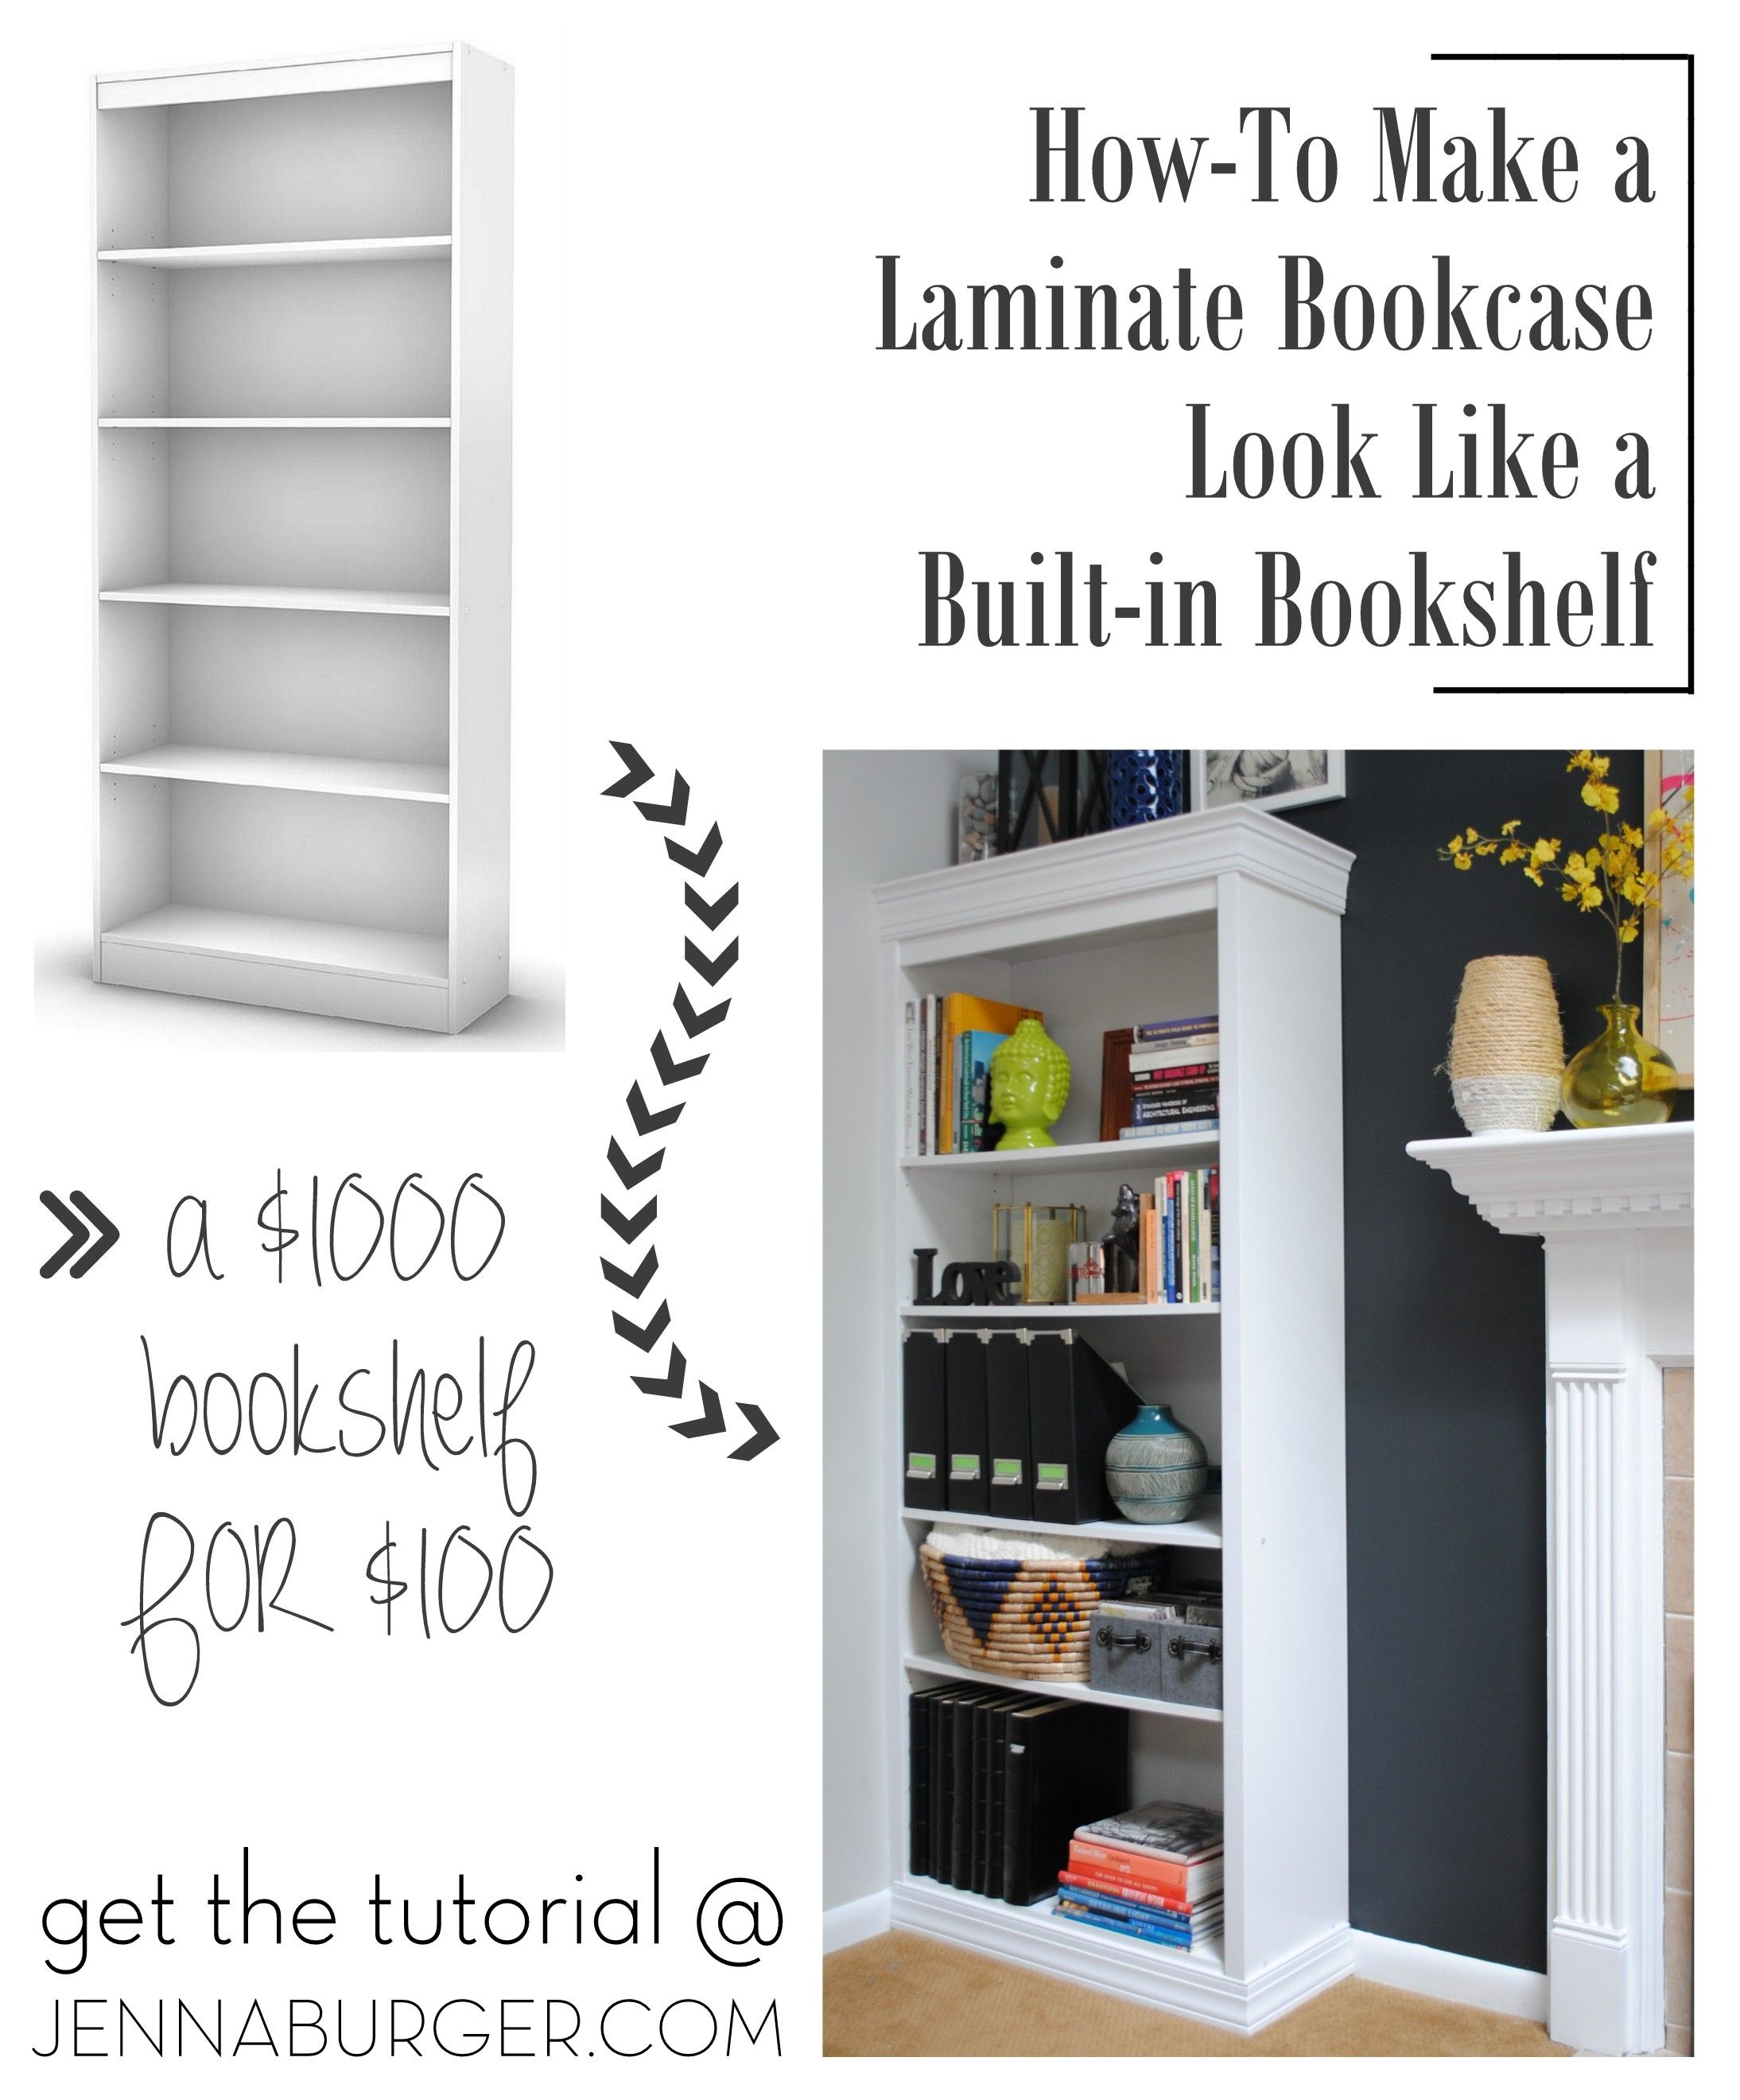 #DIY #Tutorial How-To Make A Laminate Bookcase Look Like A